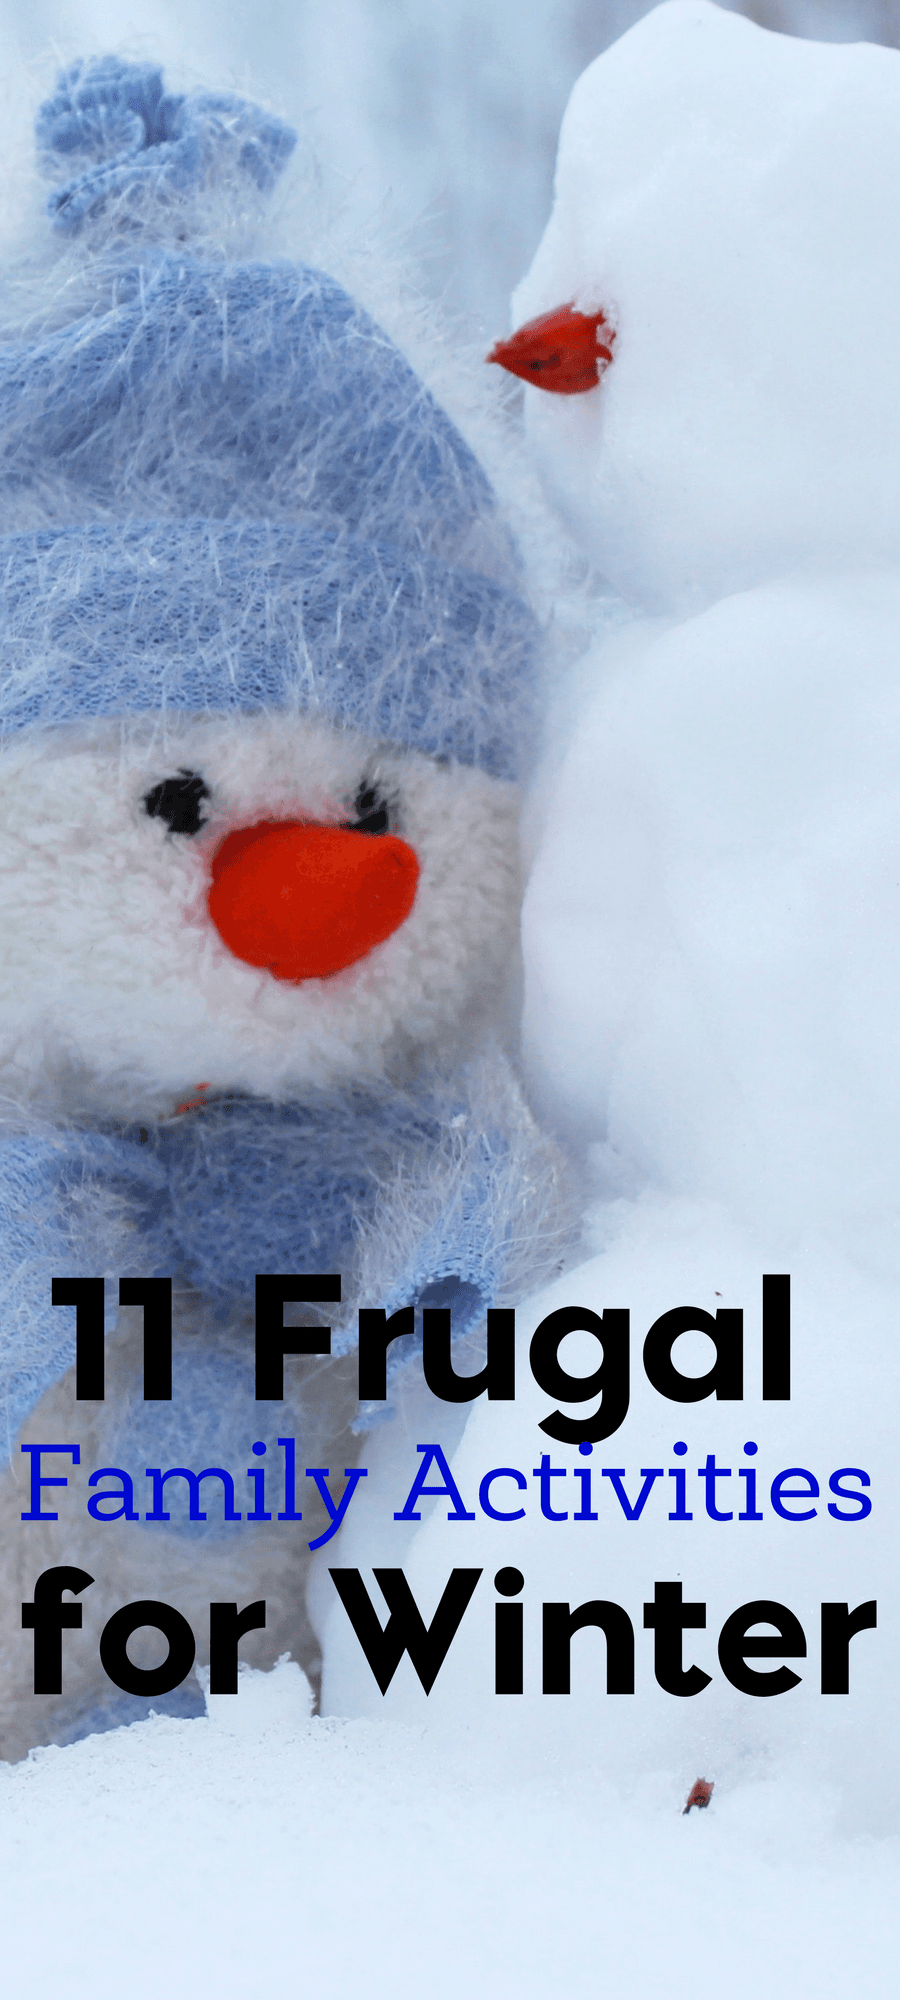 In need of something to do with your family this winter? Here are 11 frugal family activities for winter.